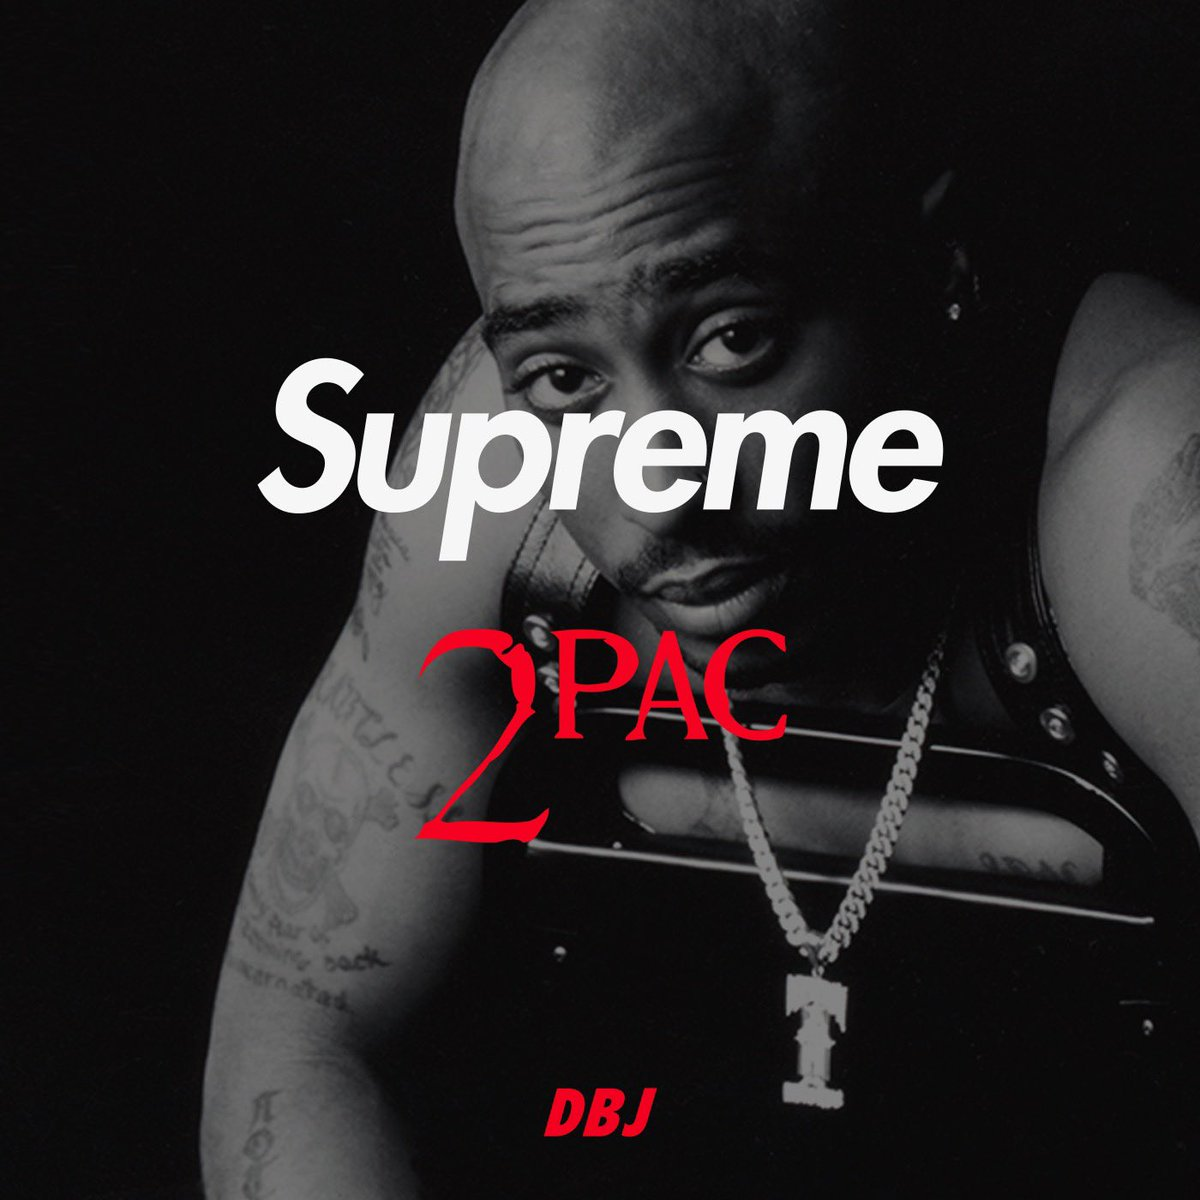 Supreme/2Pac coming this Spring/Summer